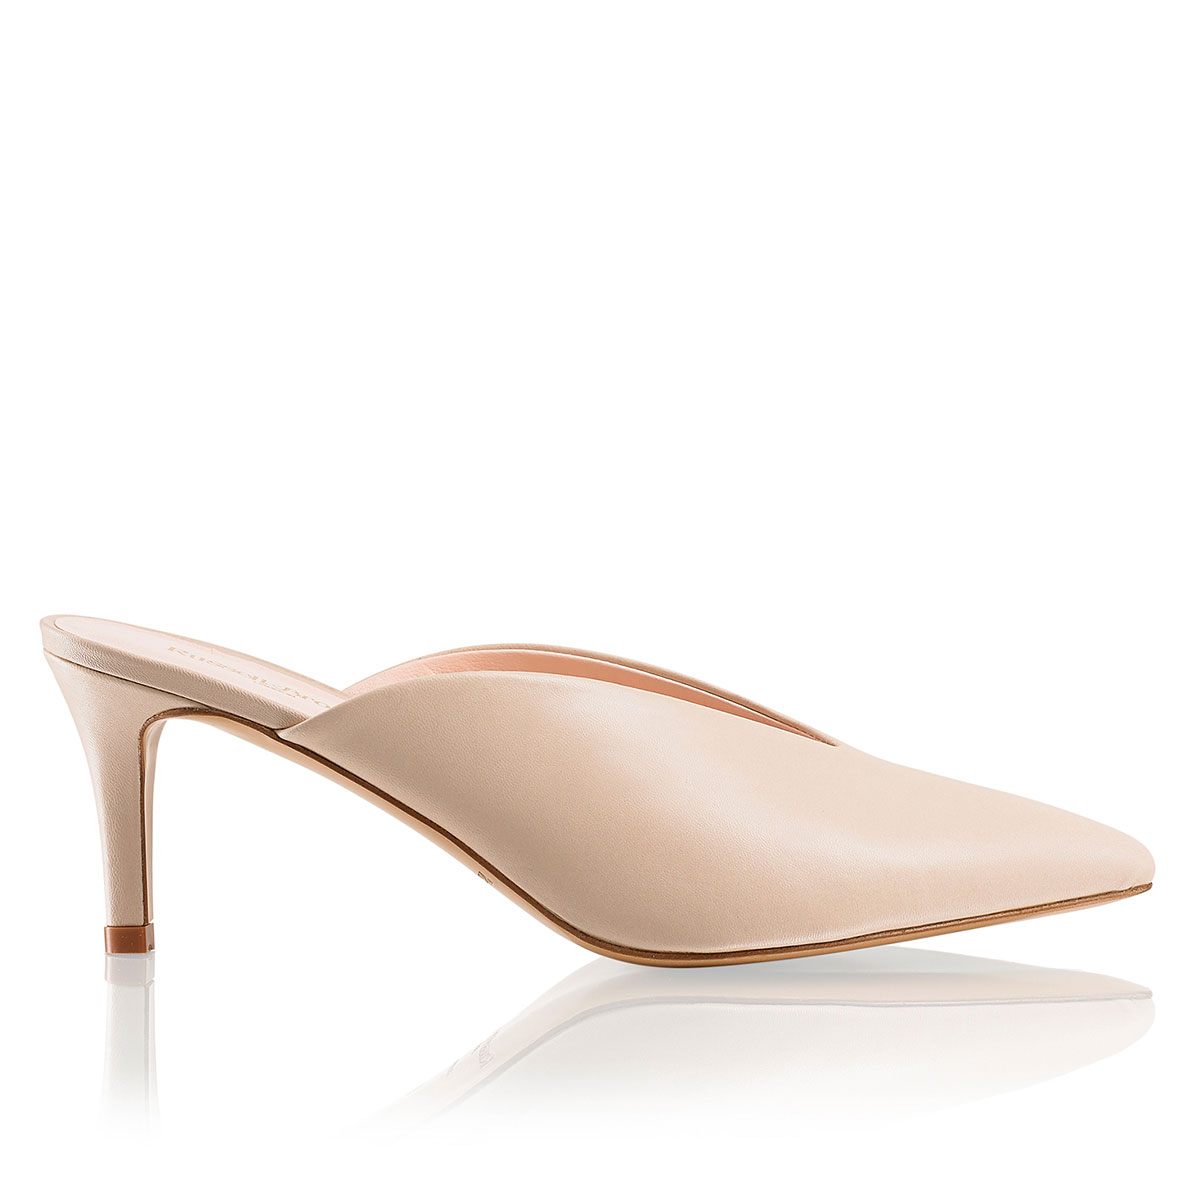 Russell and Bromley VISA Pointed Toe Mule